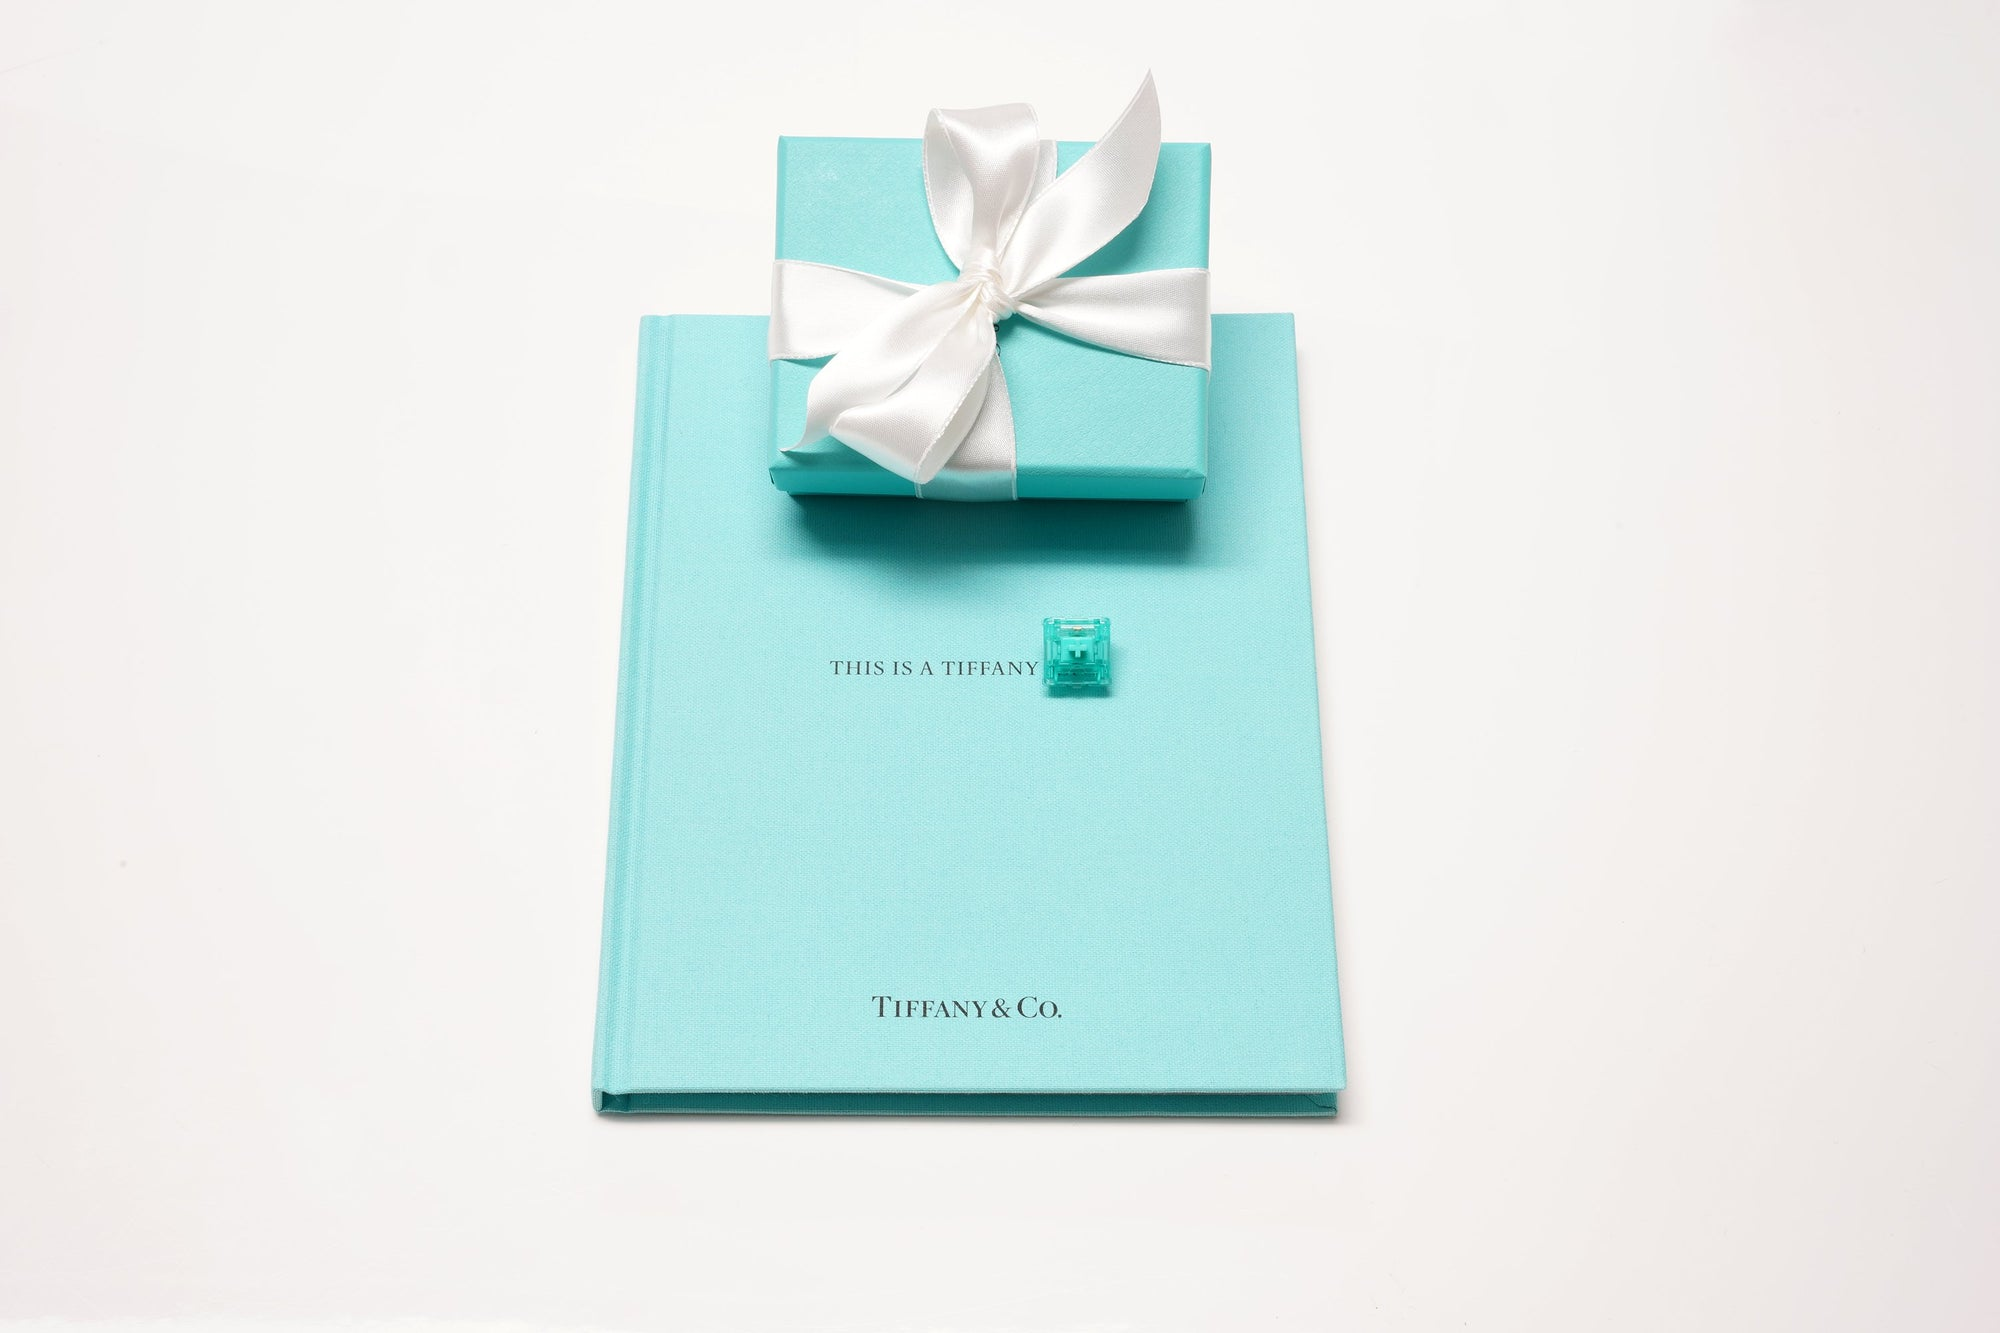 Tiffany Blue Book with Tiffany blue box